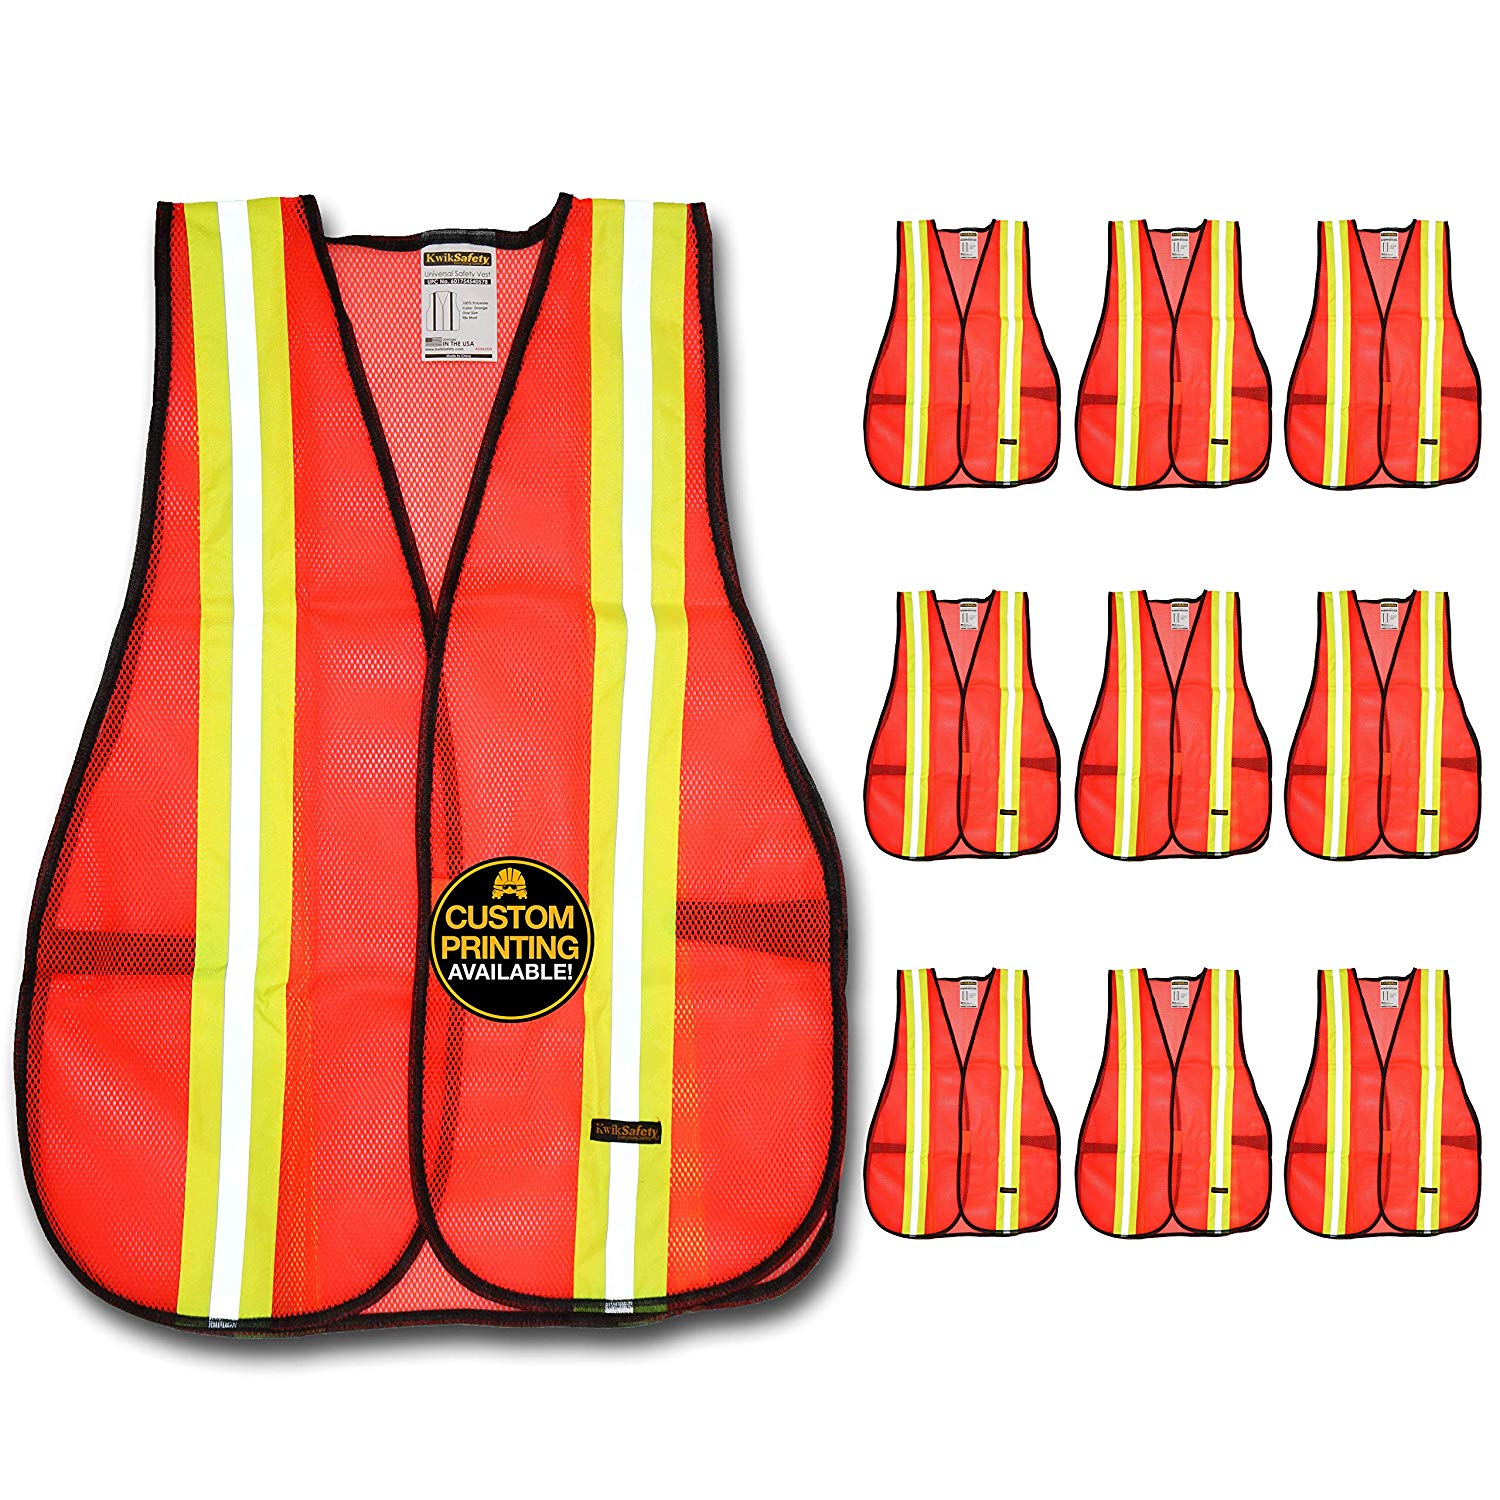 KwikSafety (Charlotte, NC) UNIVERSAL ANSI Class Unrated (Snag Free Velcro Closure) Safety Vest (Premium 10 PACK) High Visibility Lightweight Reflective Tape Hi-Vis Work One Size Fits Most, Orange